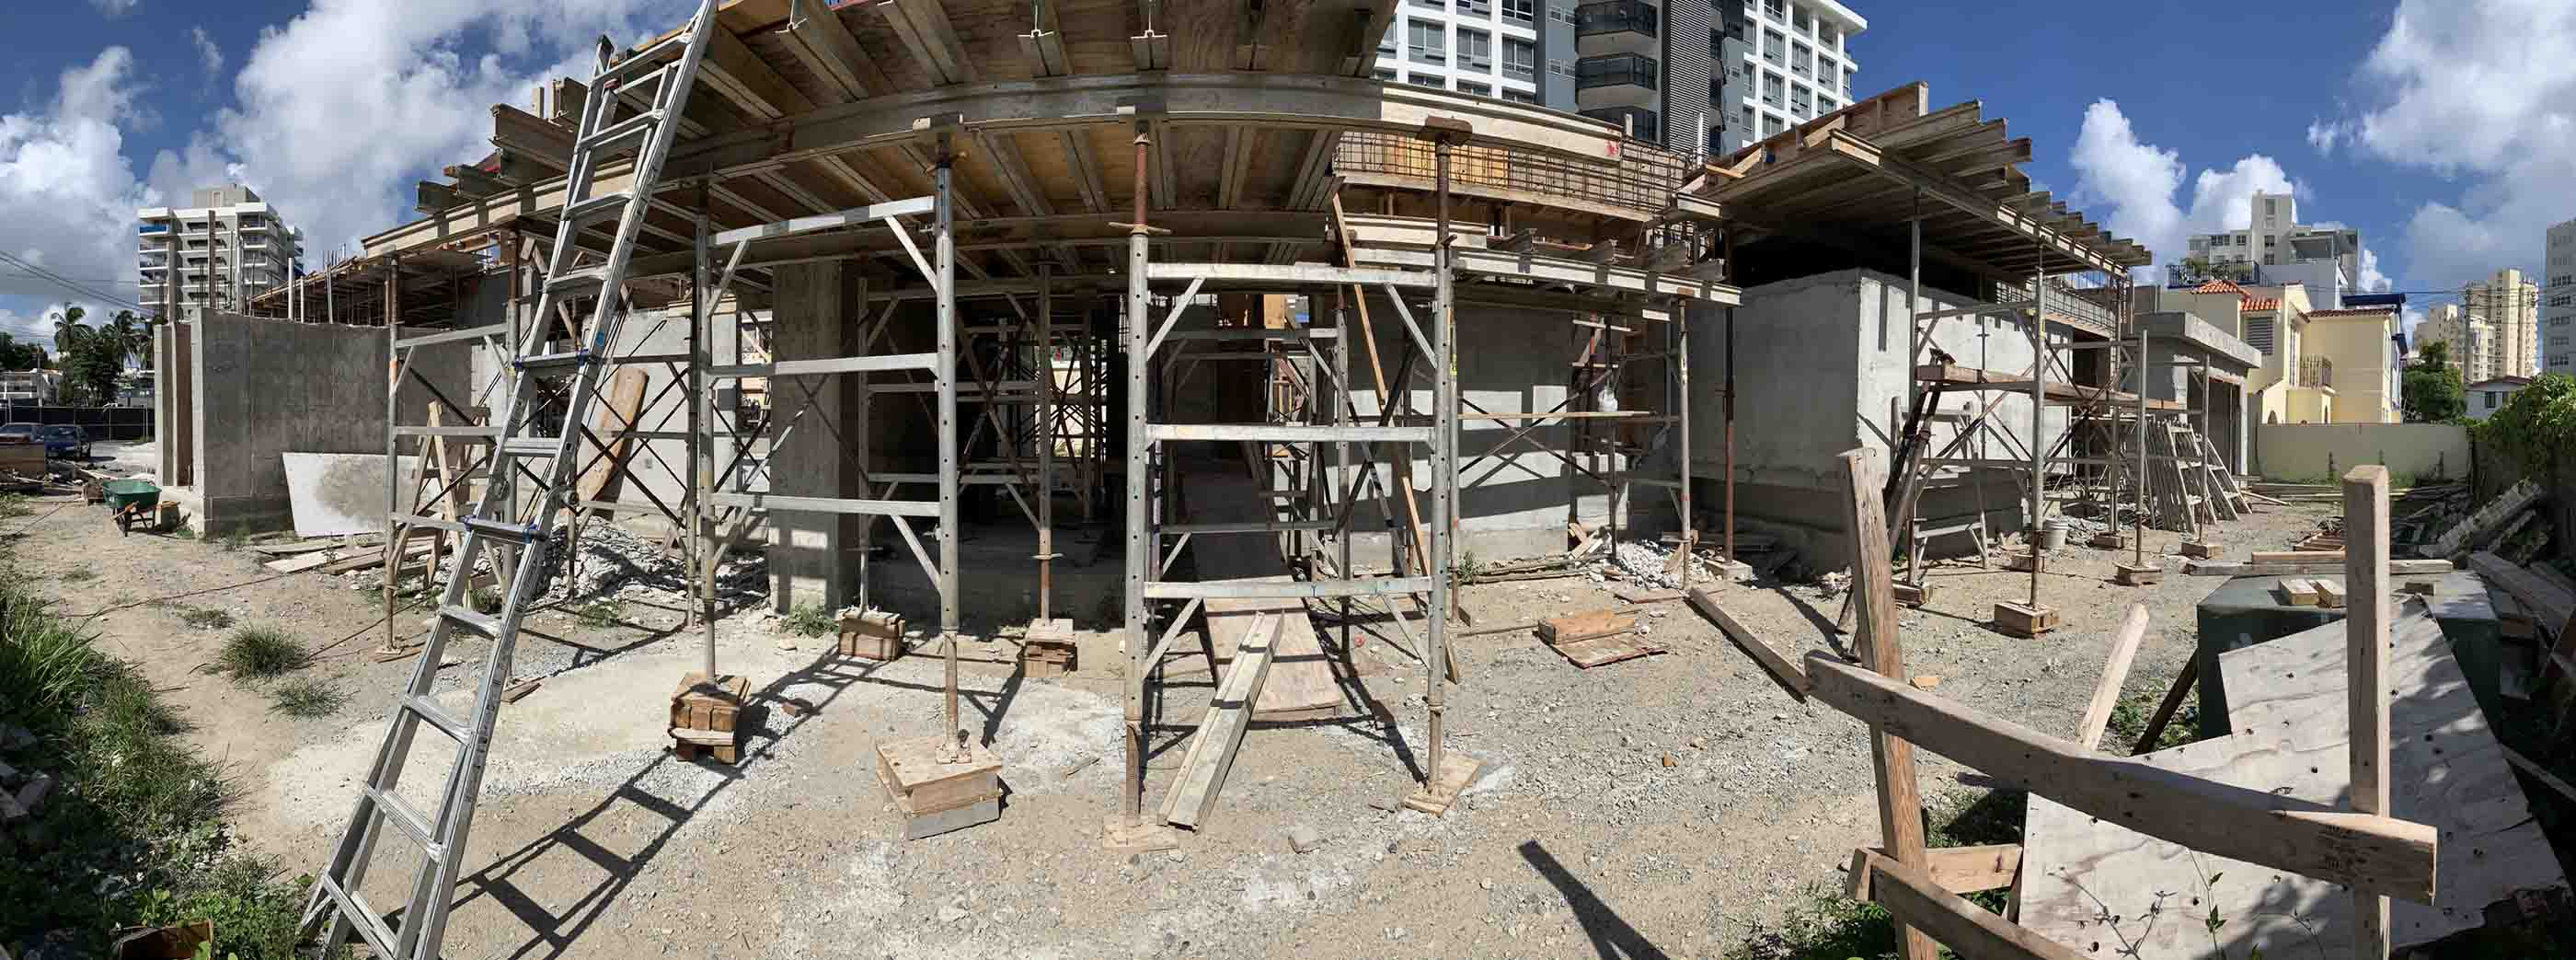 Construction of an AD&V private residence project.